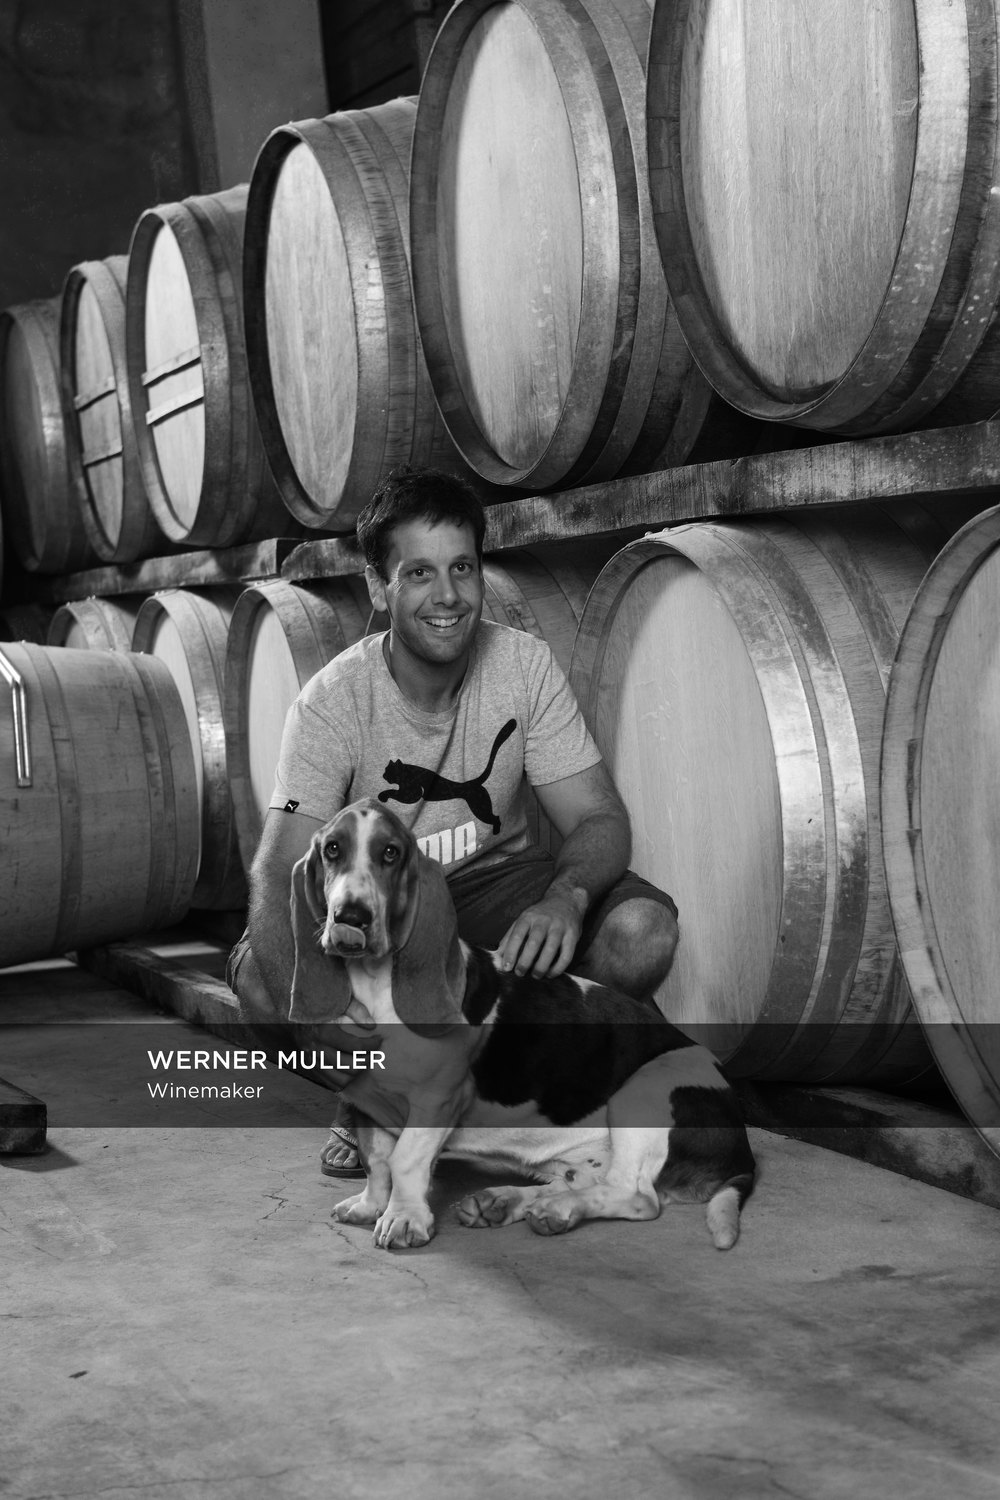 WERNER-WINE-MAKER.jpg